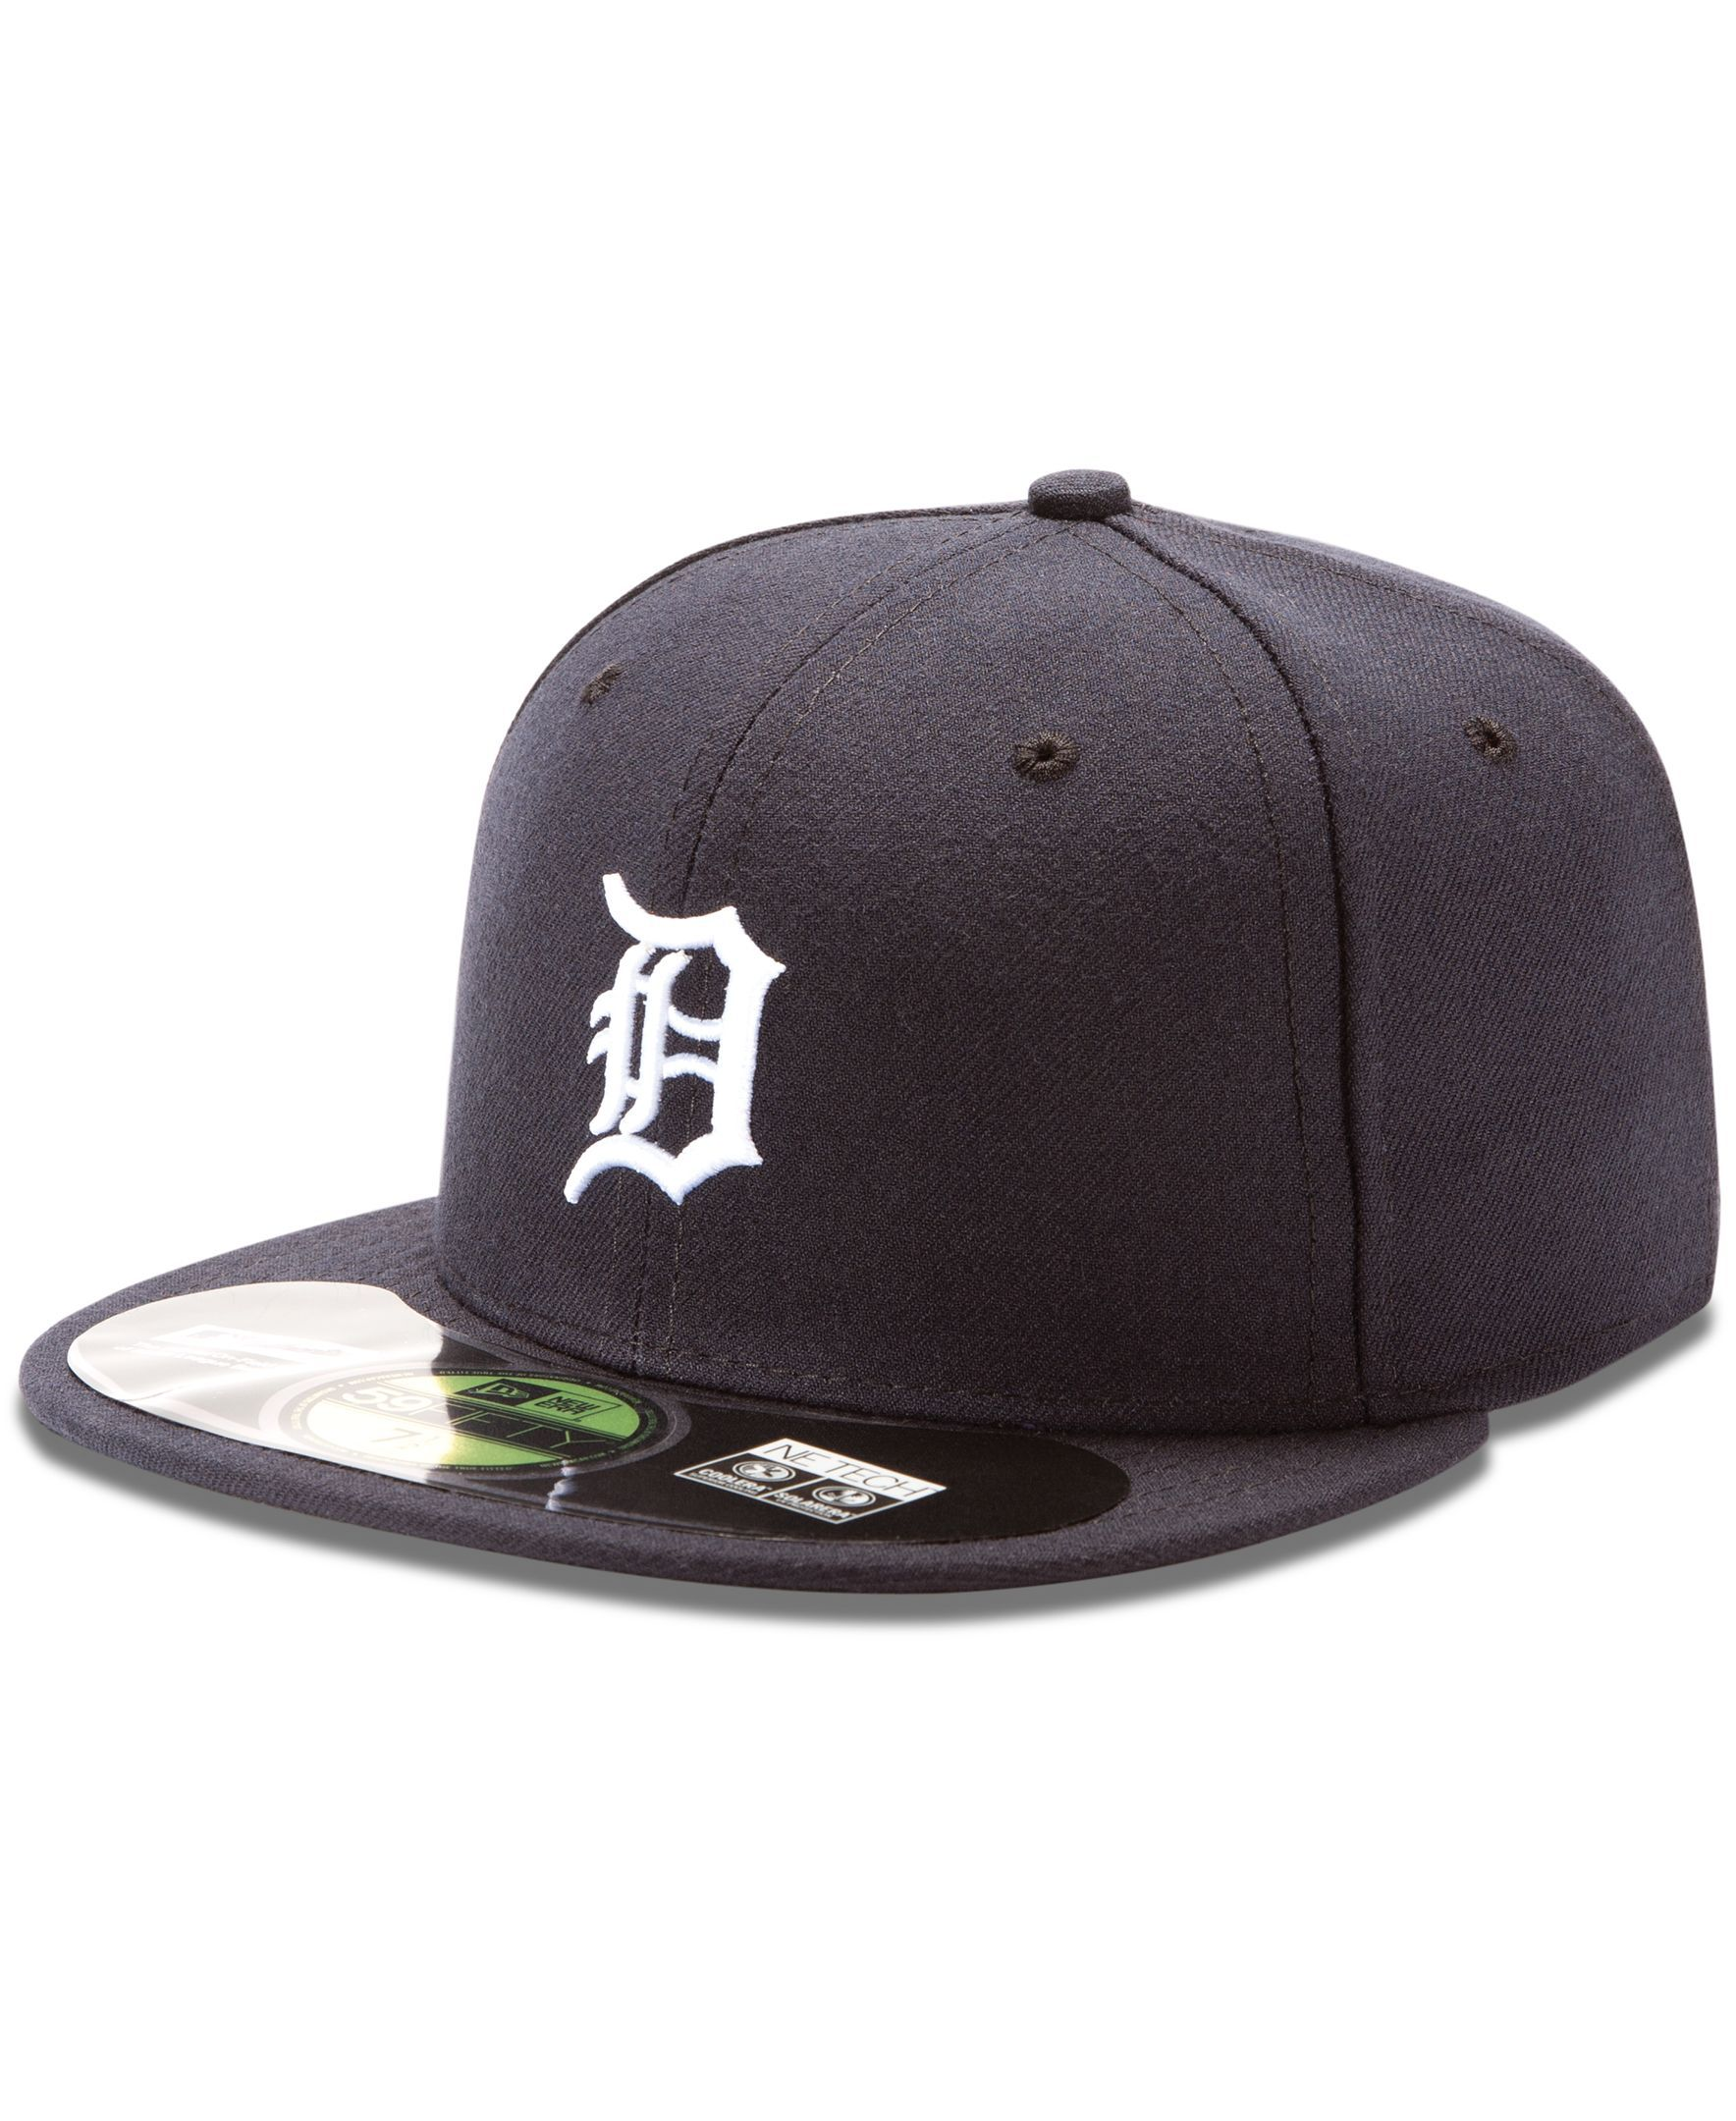 aa39472cfc686 New Era Mlb Hat